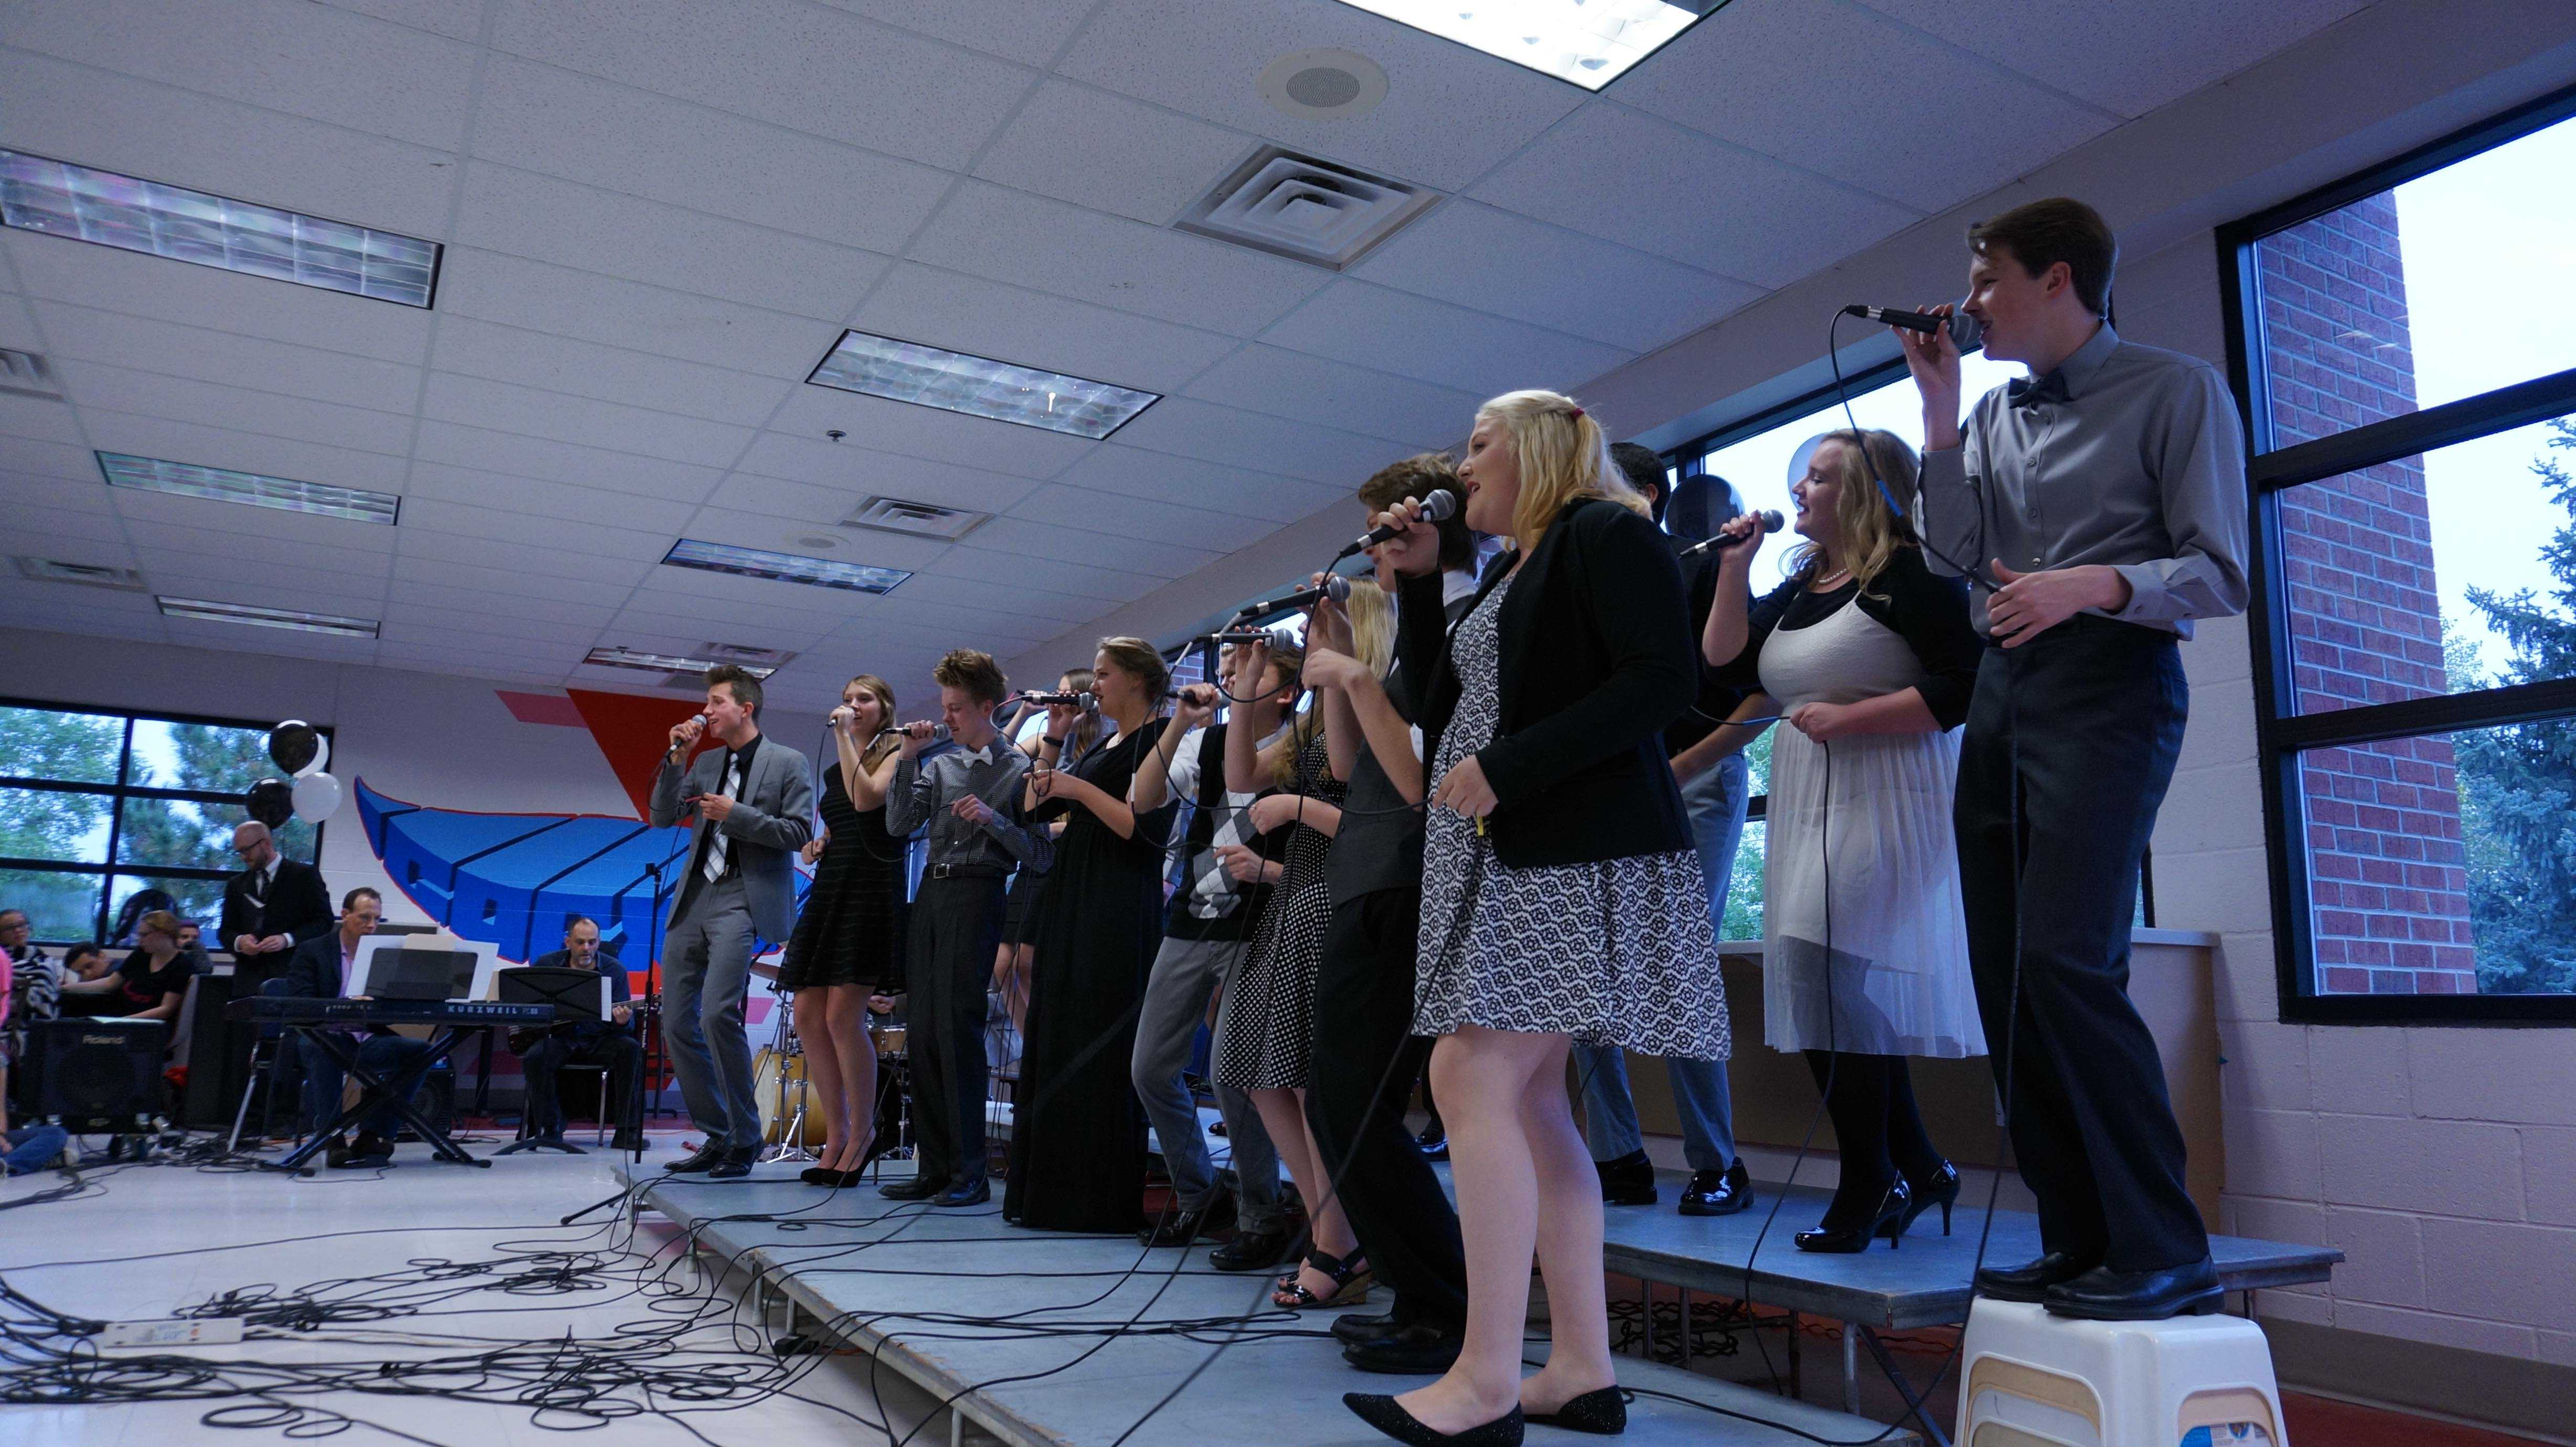 The jazz choir sings inside IC cafe during the Jazz on the Green event